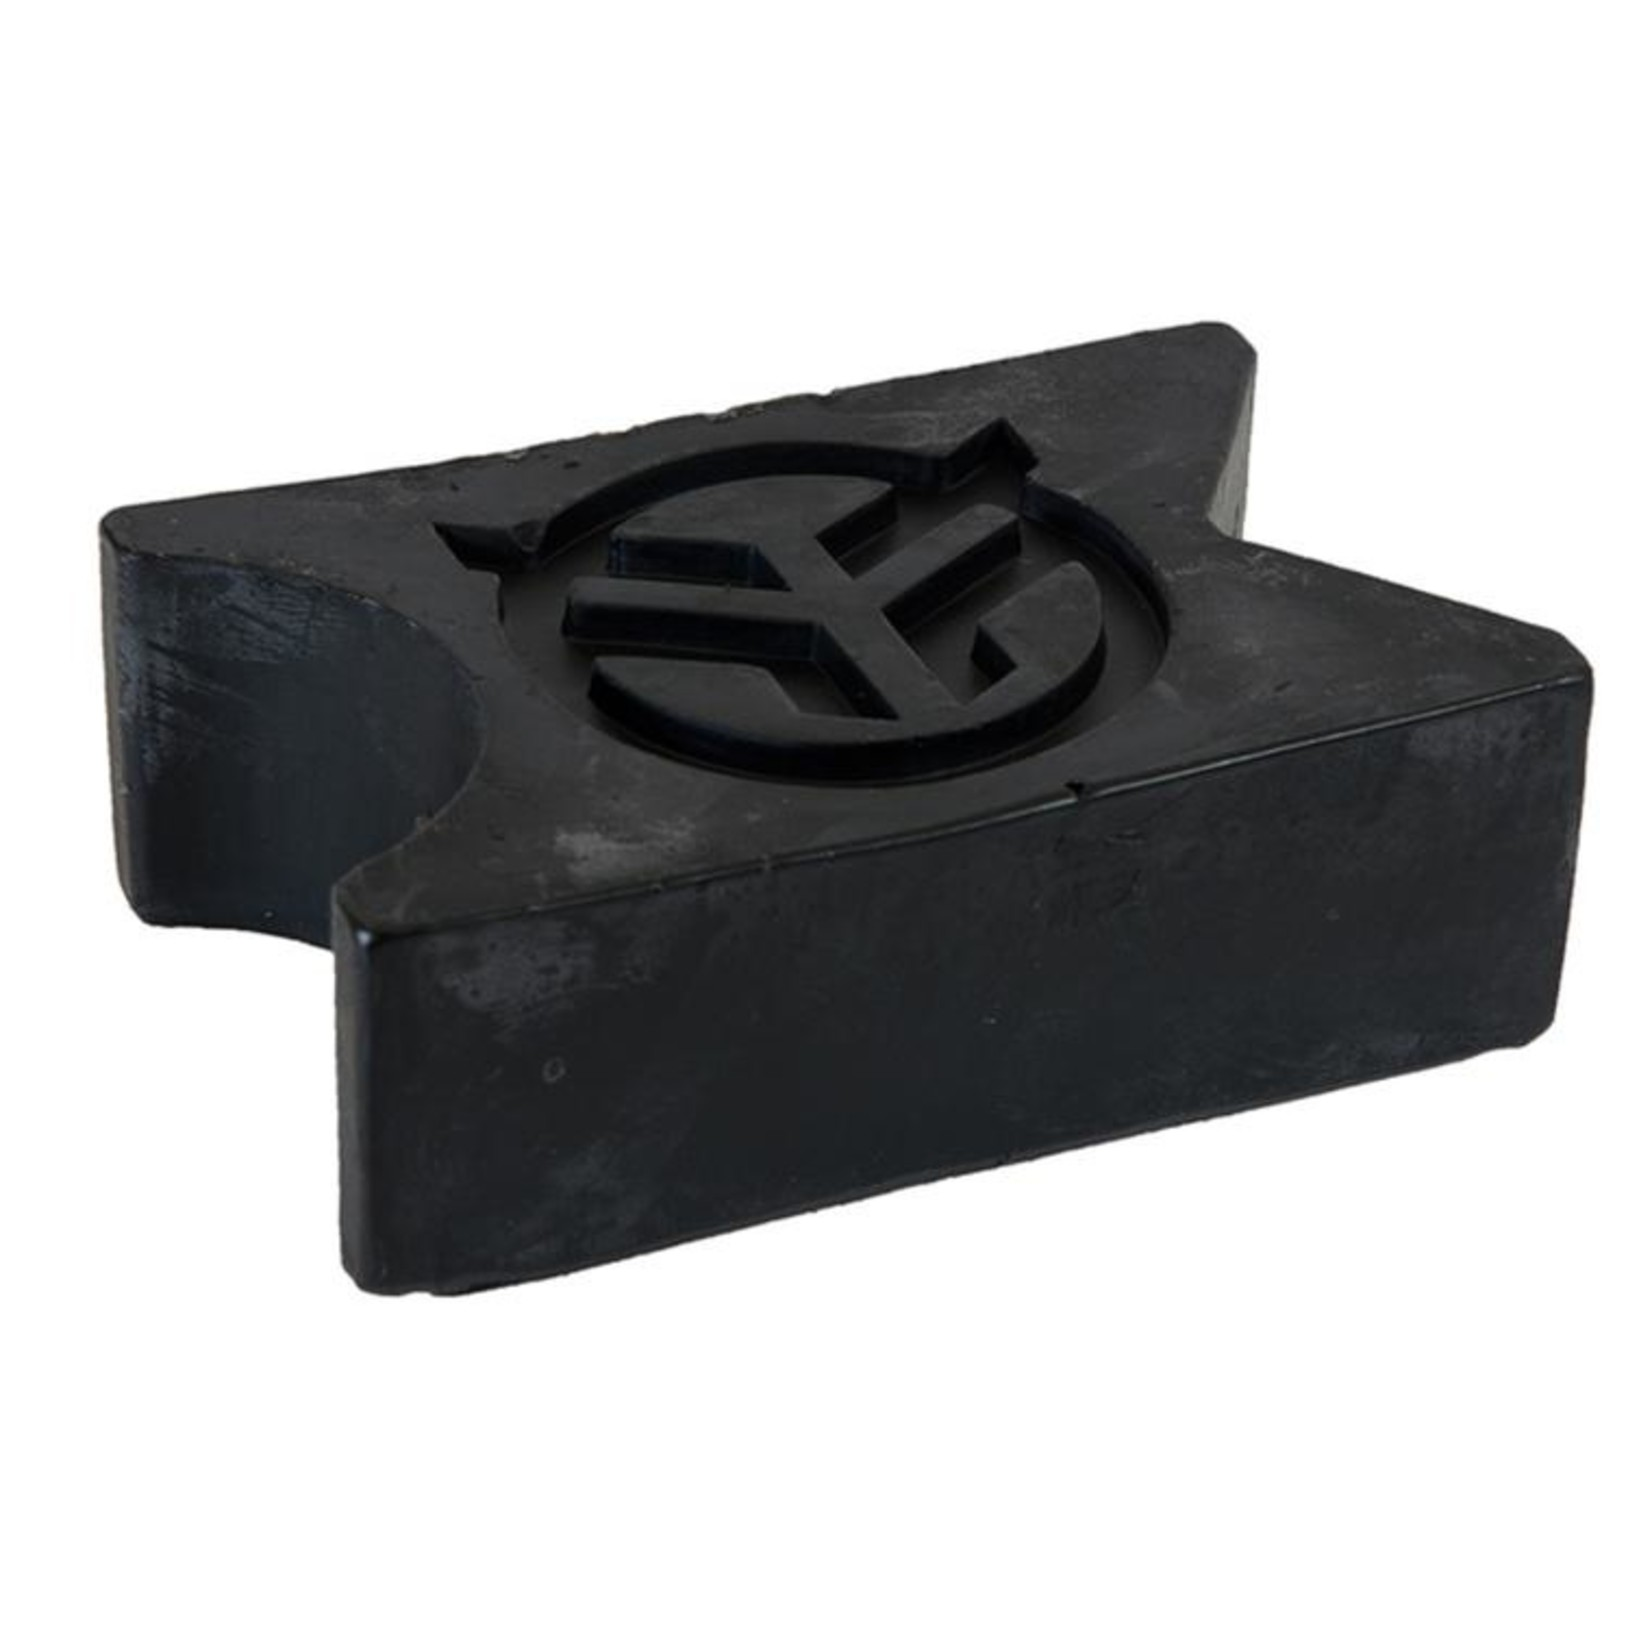 Federal Federal Wax Block, Black